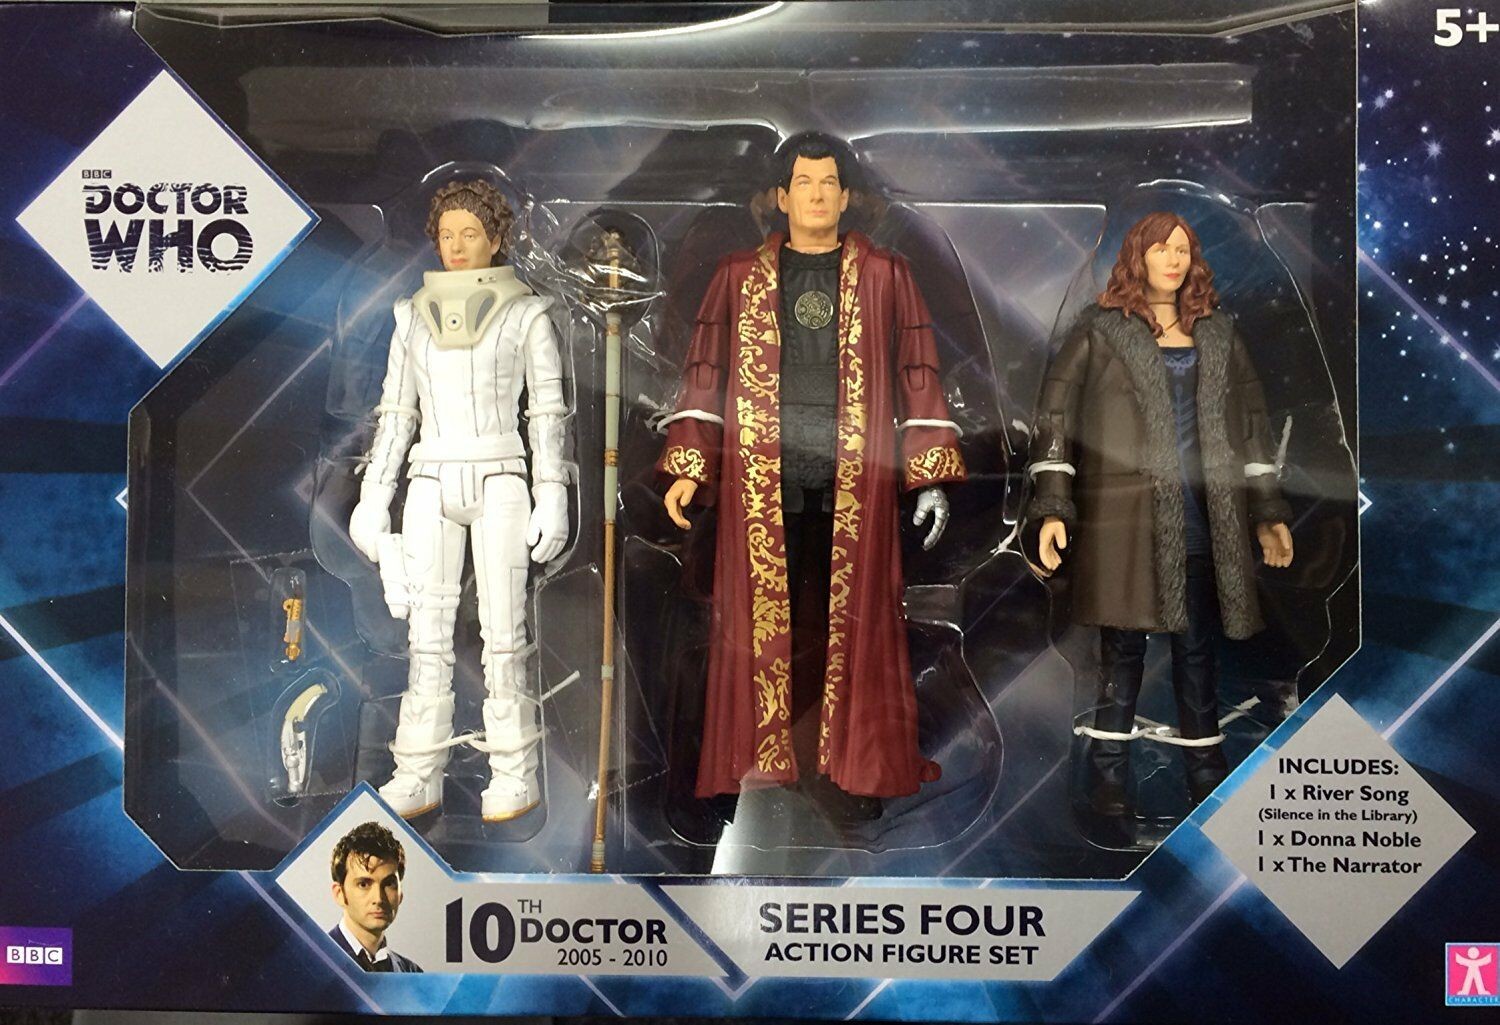 Doctor Who Series 4 Action Figure Set River Song, Damenschuhe Noble and The Narrator